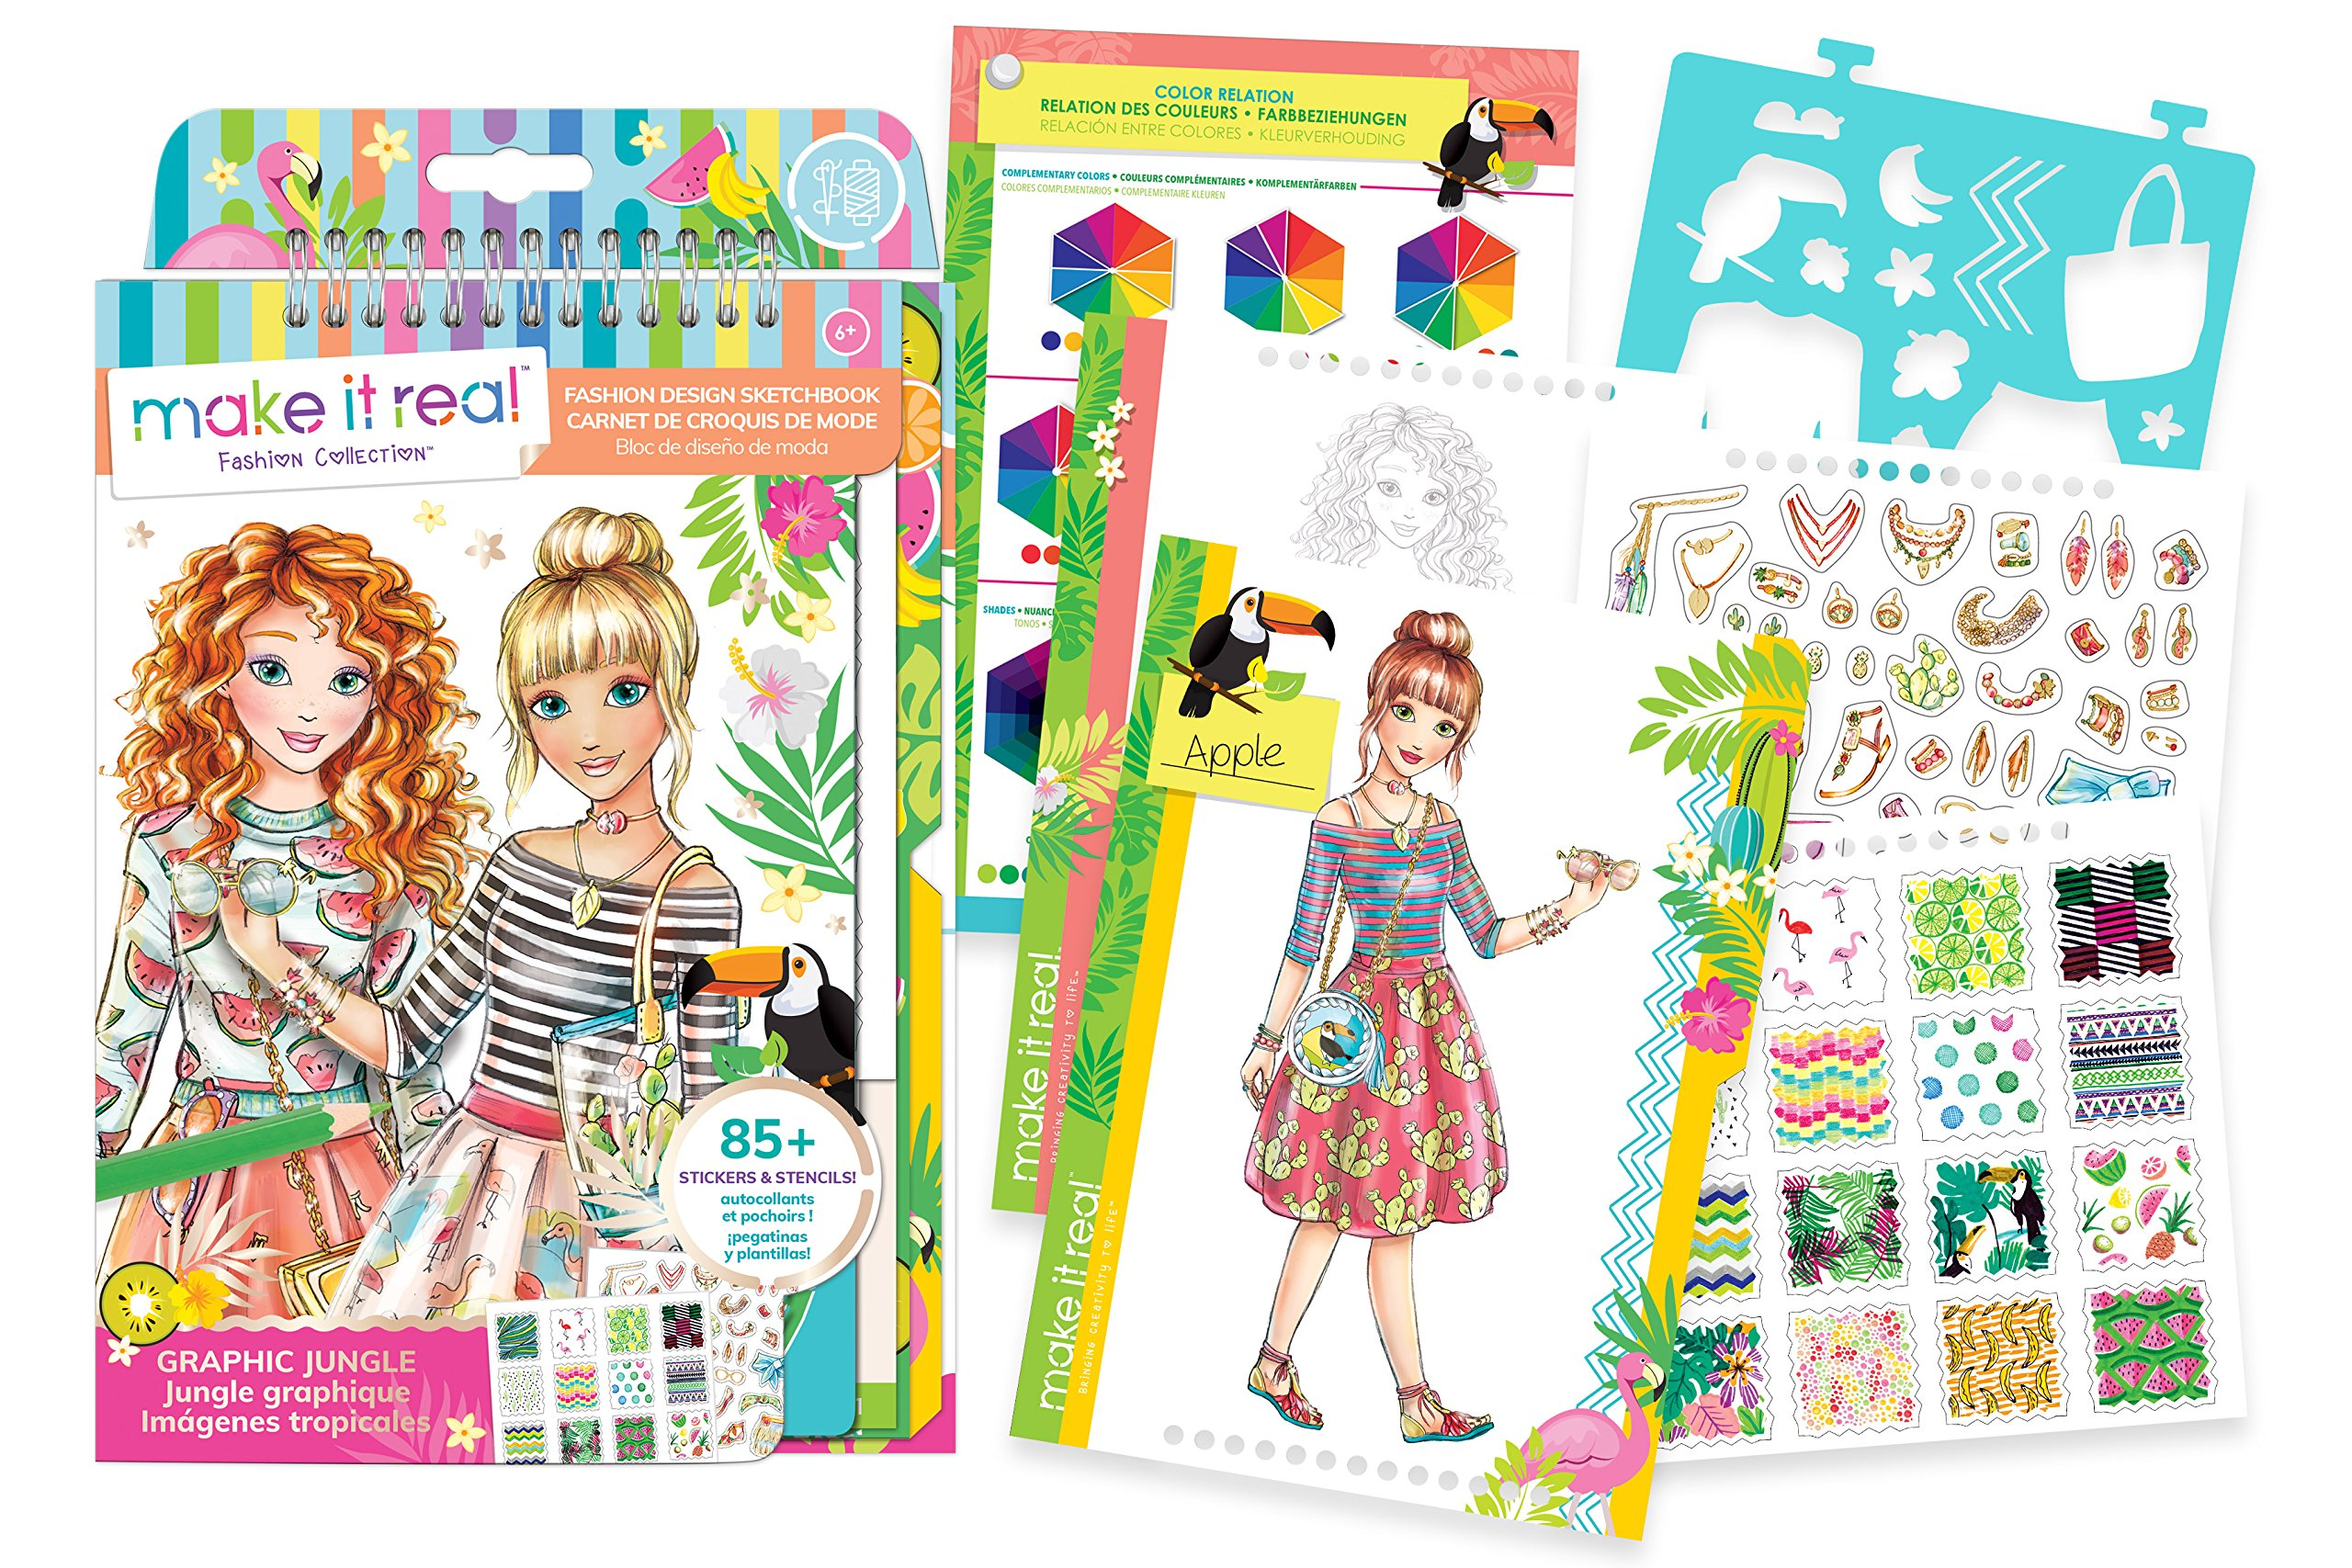 Make It Real - Fashion Design Sketchbook: Graphic Jungle. Inspirational Fashion Design Coloring Book for Girls. Includes Sketchbook, Stencils, Puffy Stickers, Foil Stickers, and Fashion Design Guide